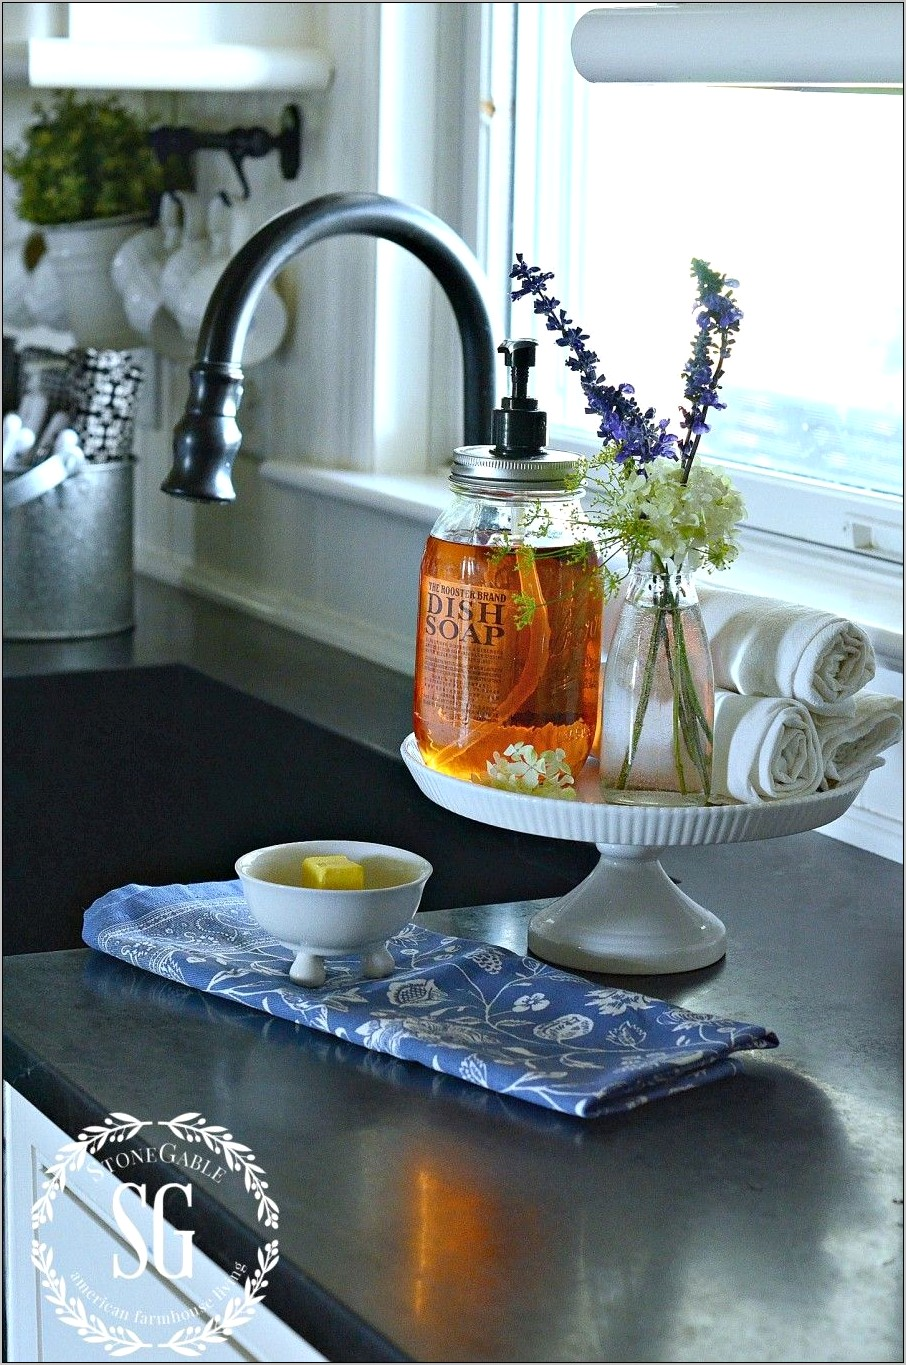 The Family Kitchen Glass Decore Plate Stand